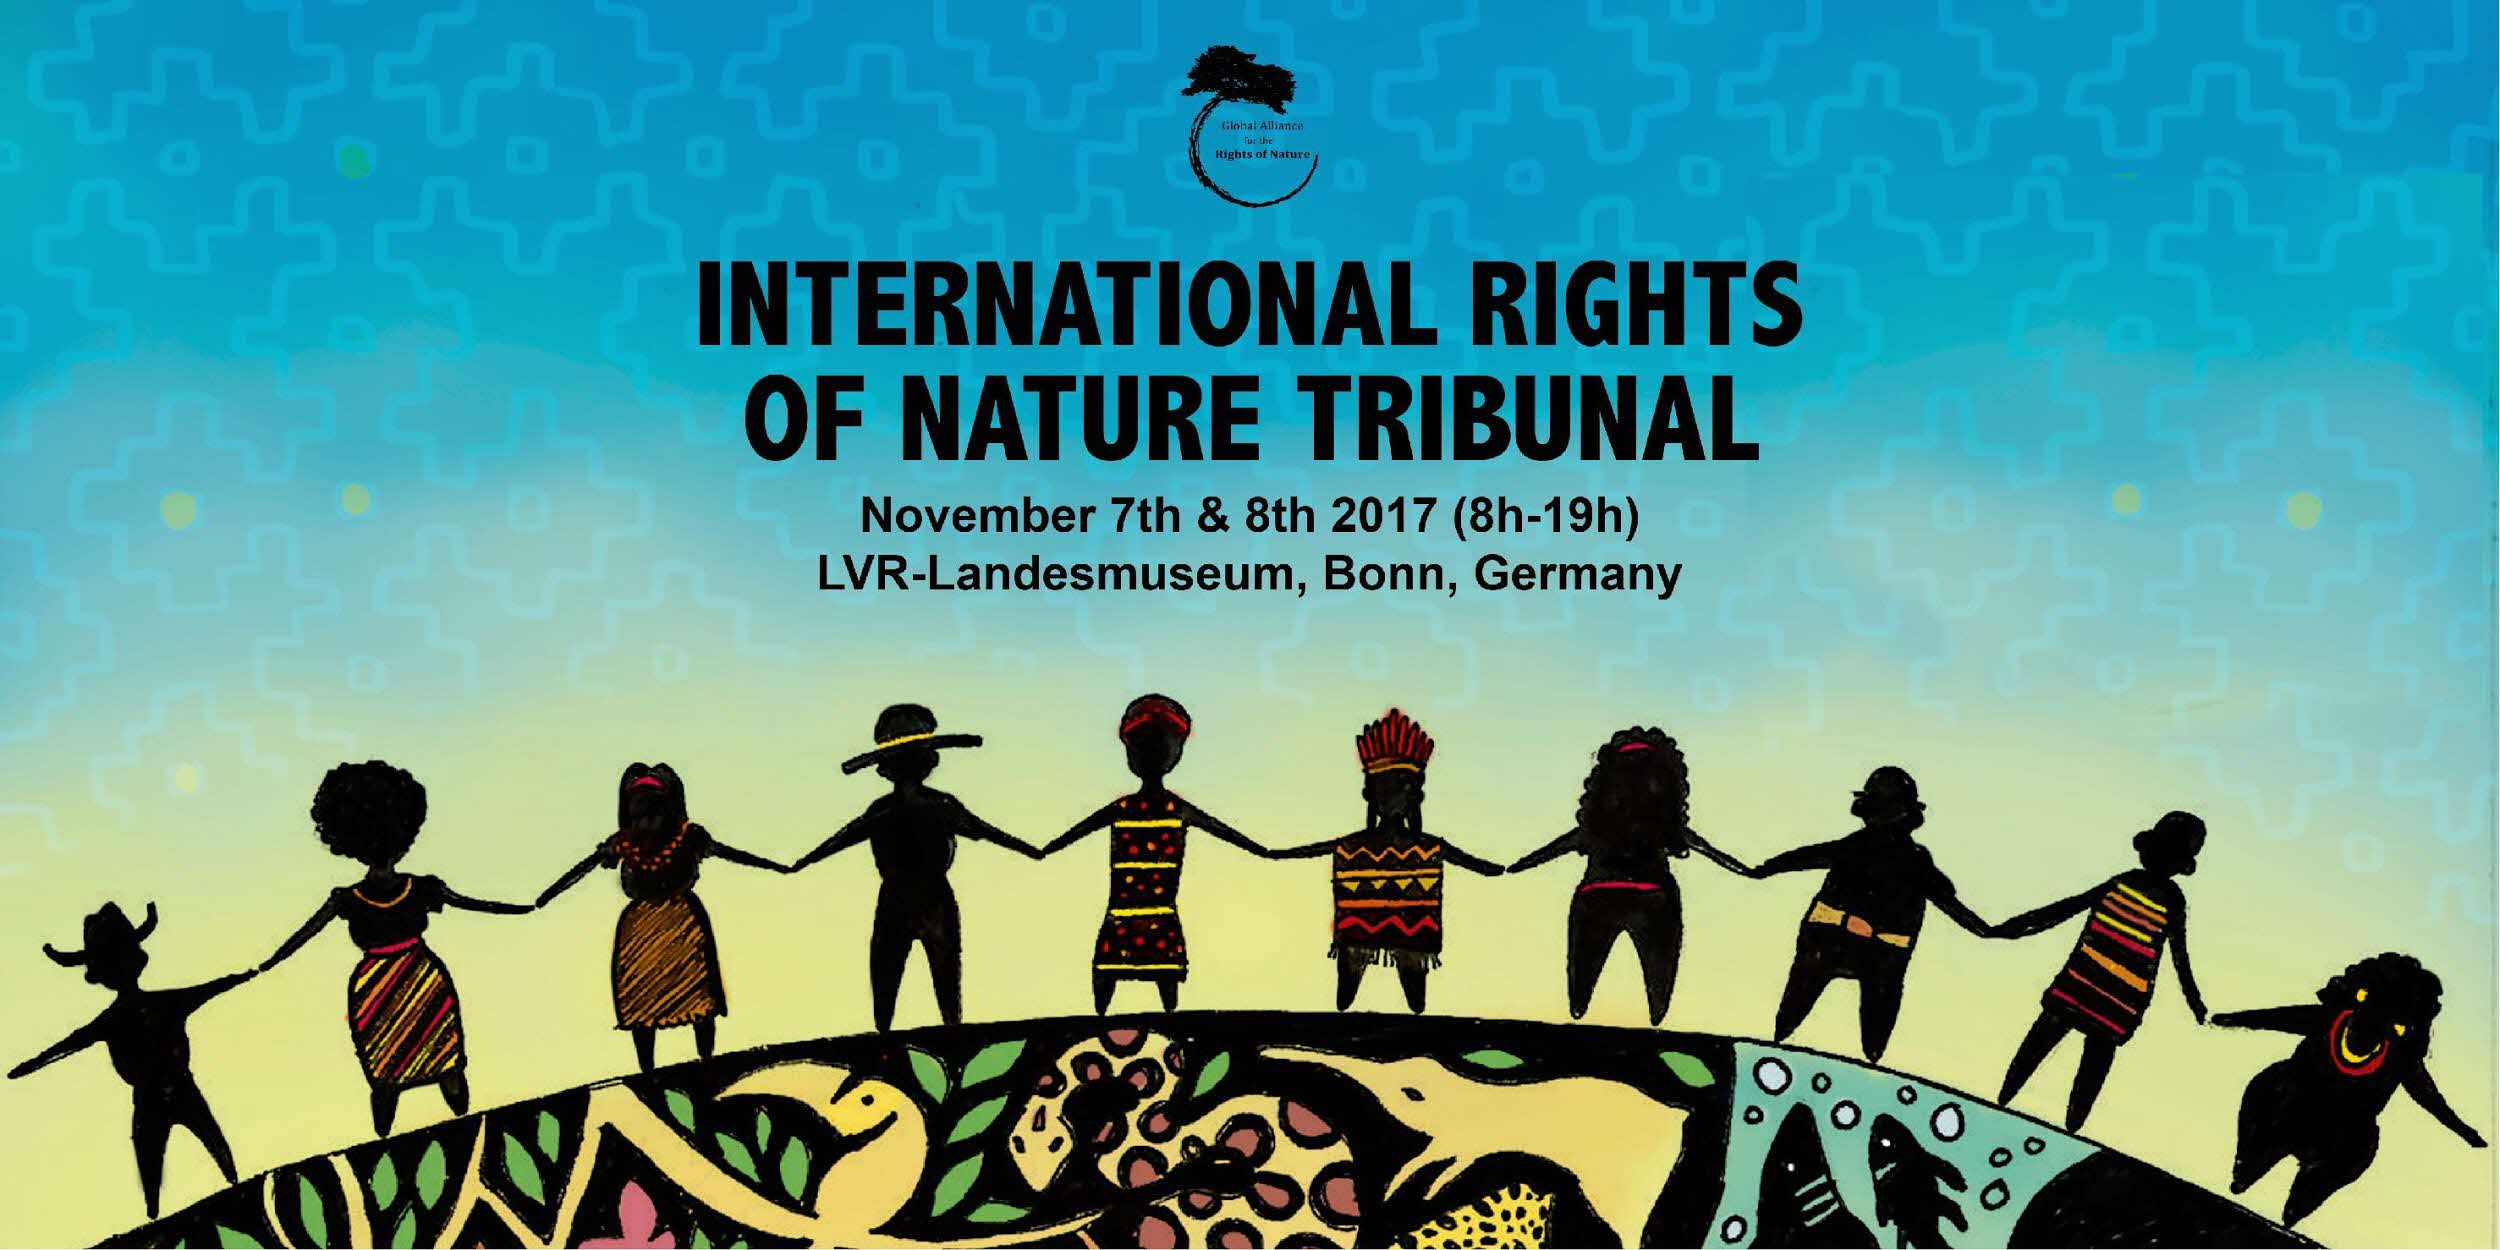 International Rights of Nature Tribunal in Bonn Findings